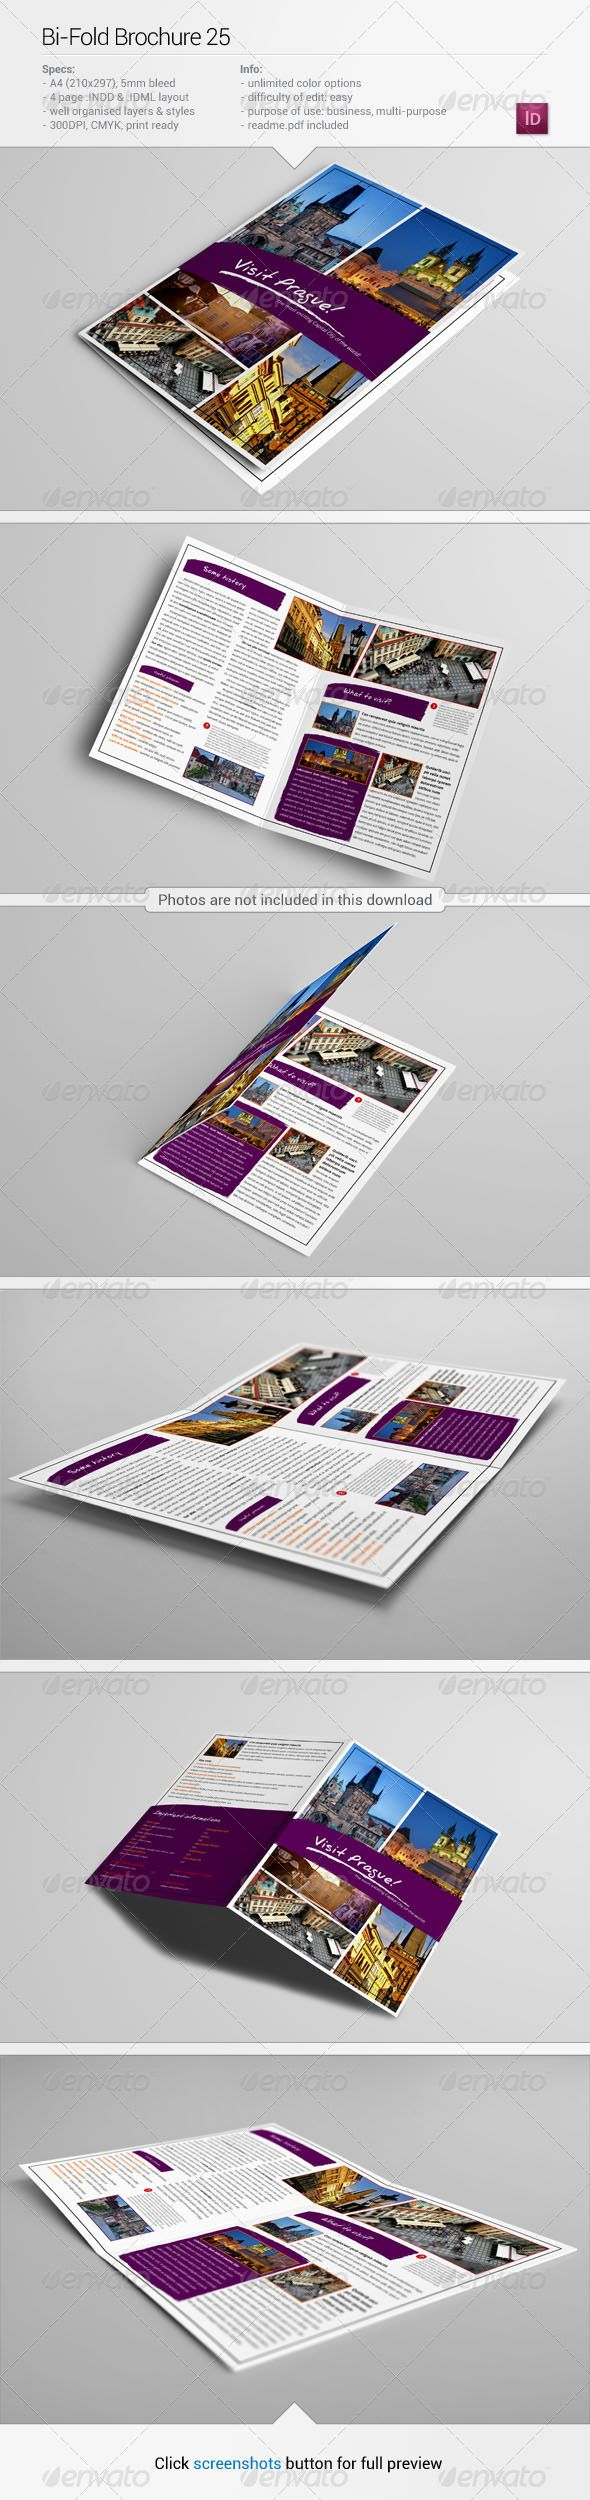 travel guide brochure template - 17 best images about retreat flyers on pinterest spirit